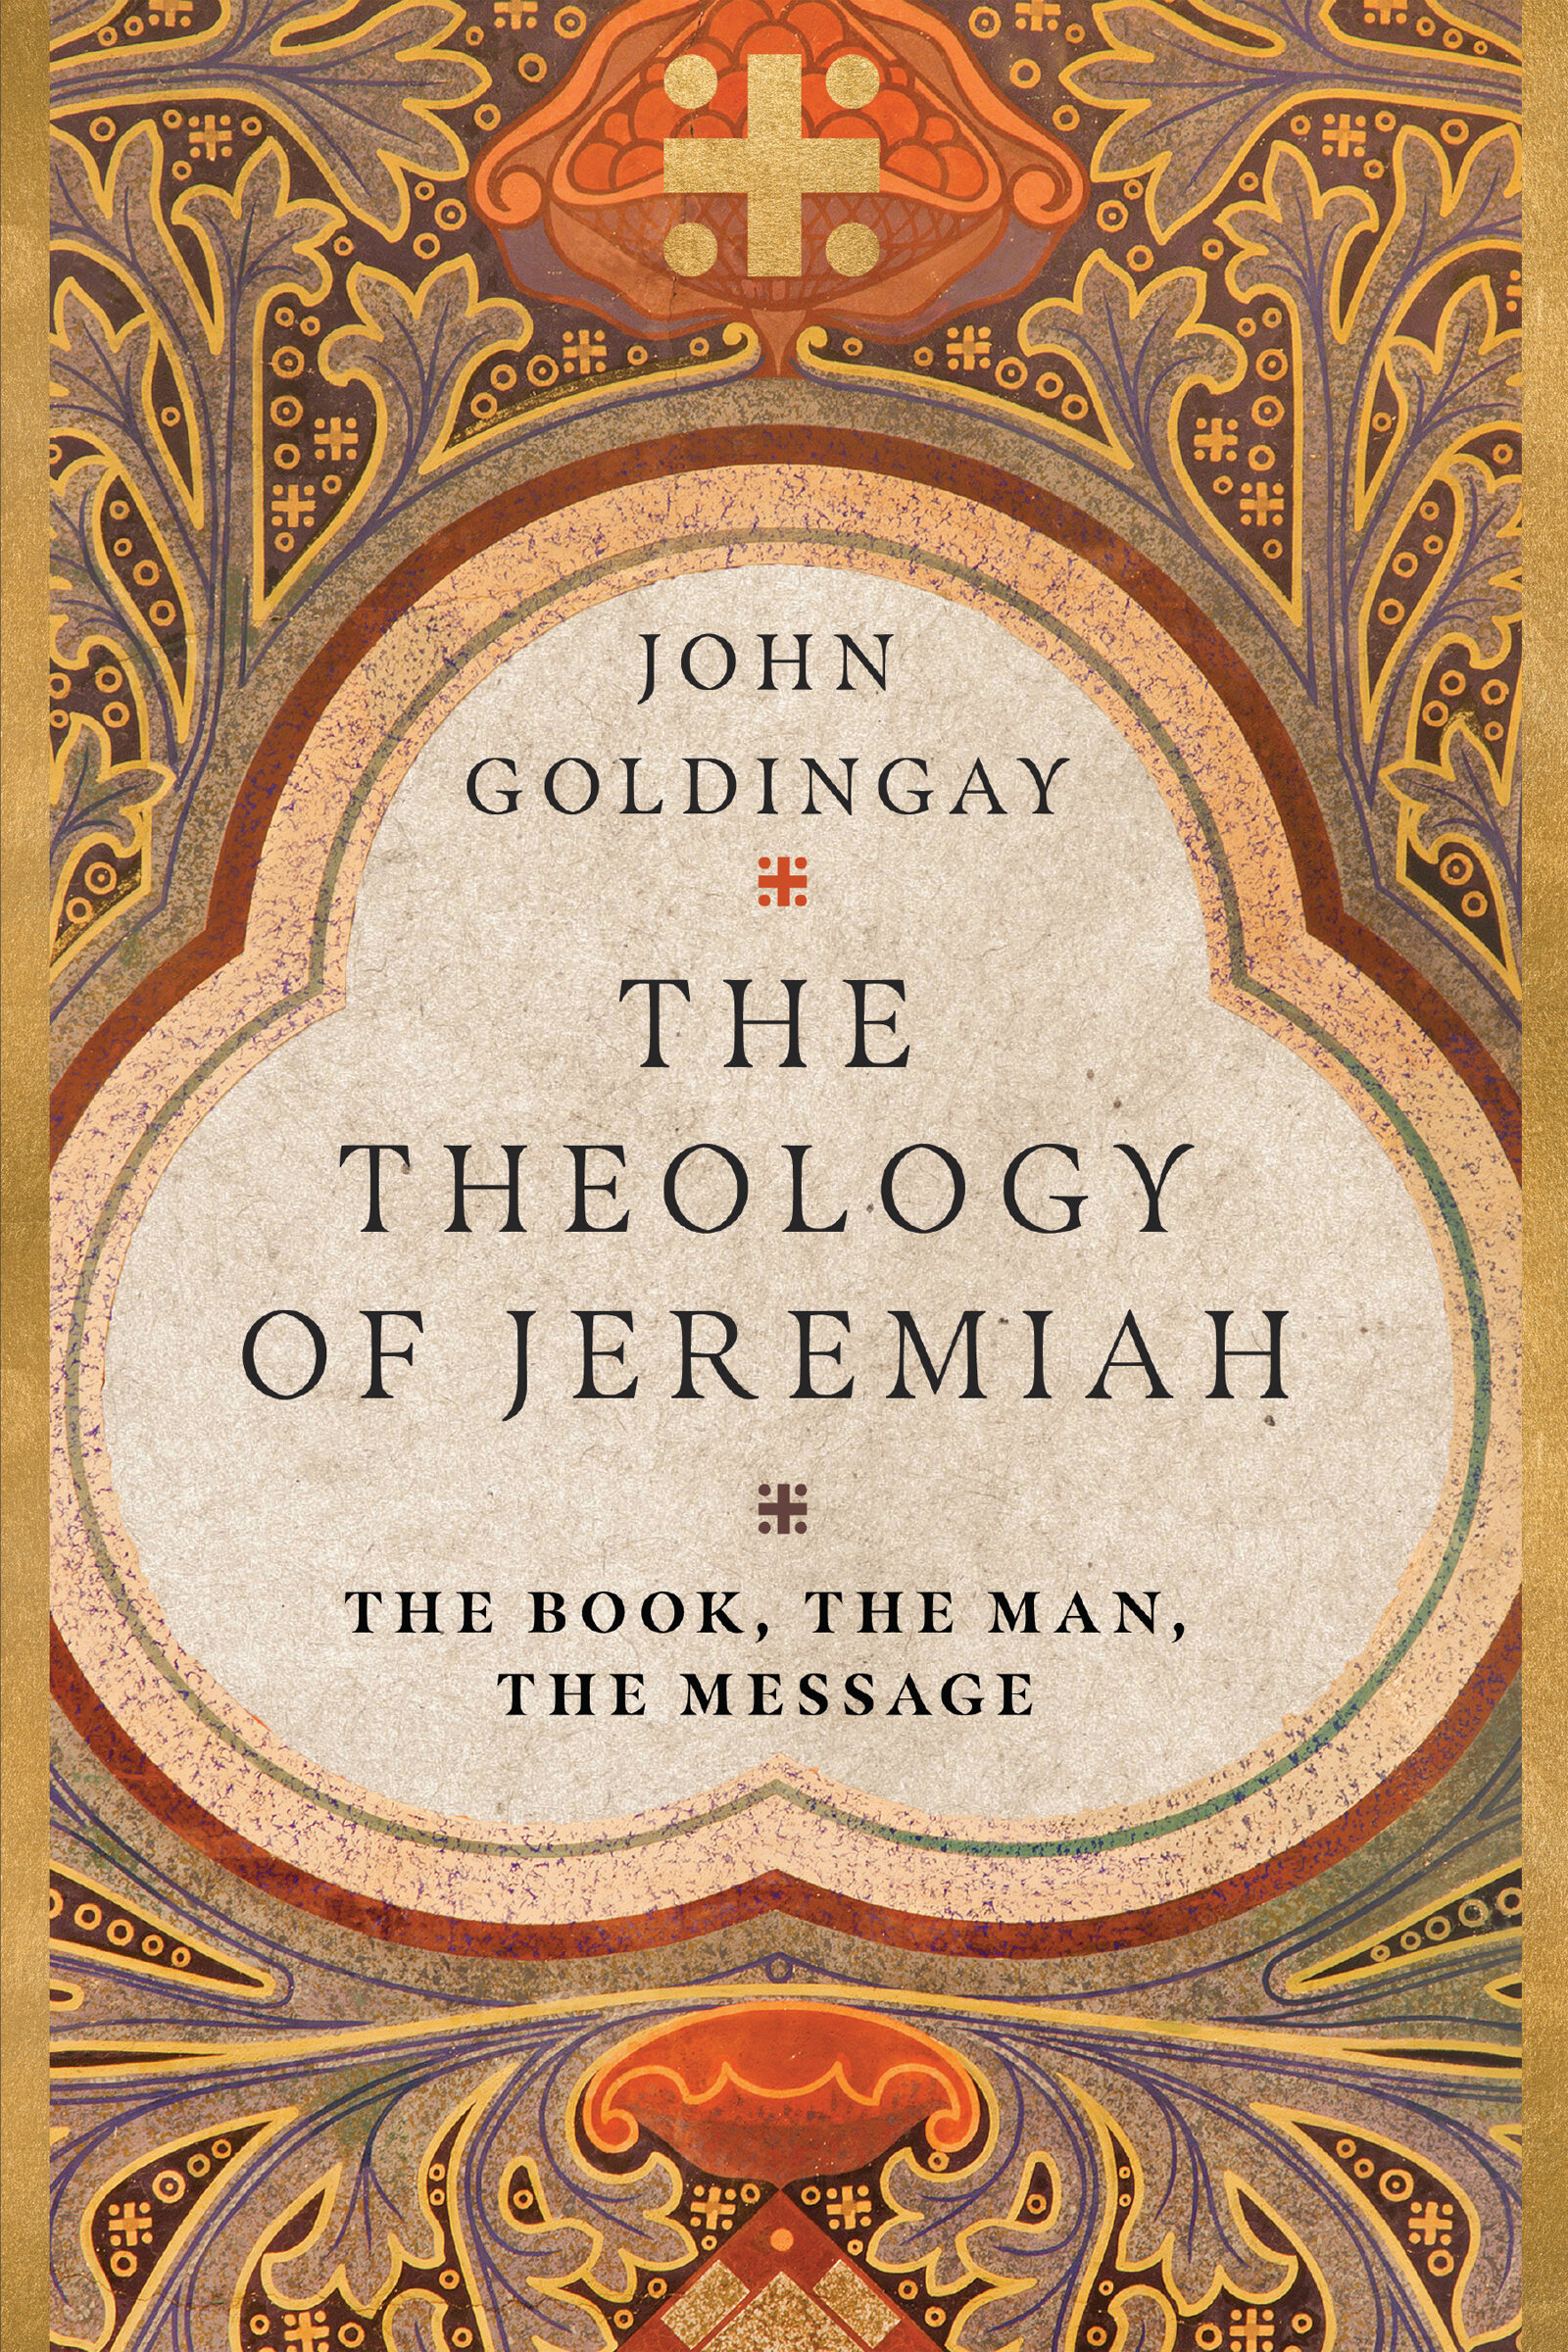 The Theology of Jeremiah: The Book, the Man, the Message